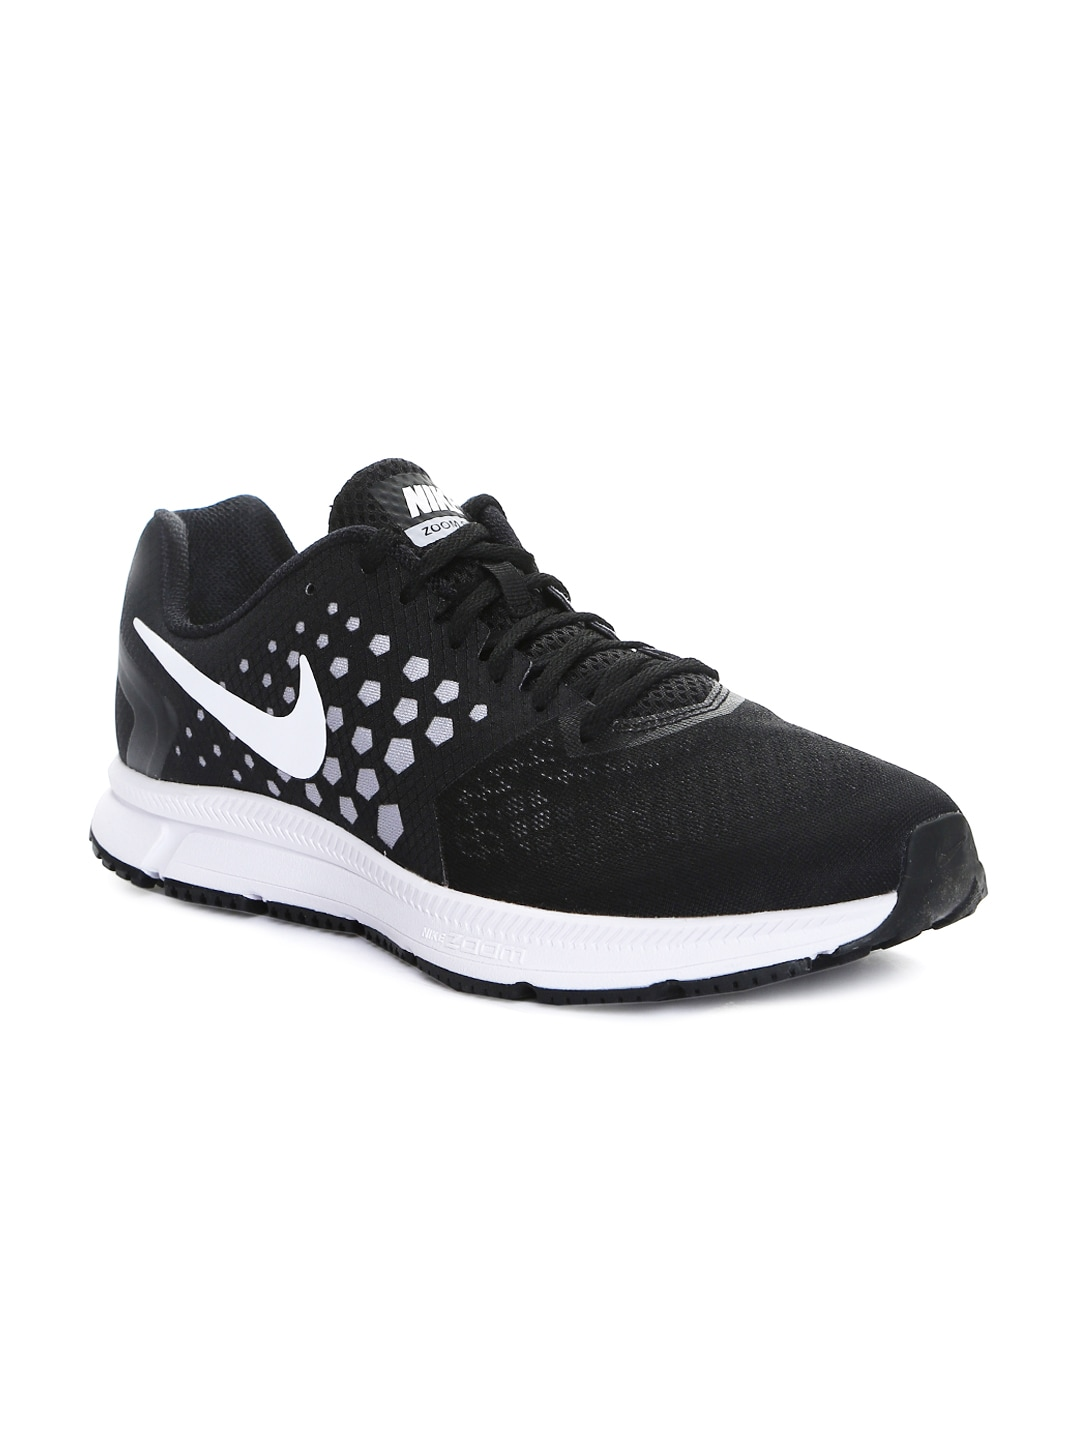 premium selection 74db1 7051d Nike Football Soch Sports Shoes - Buy Nike Football Soch Sports Shoes online  in India